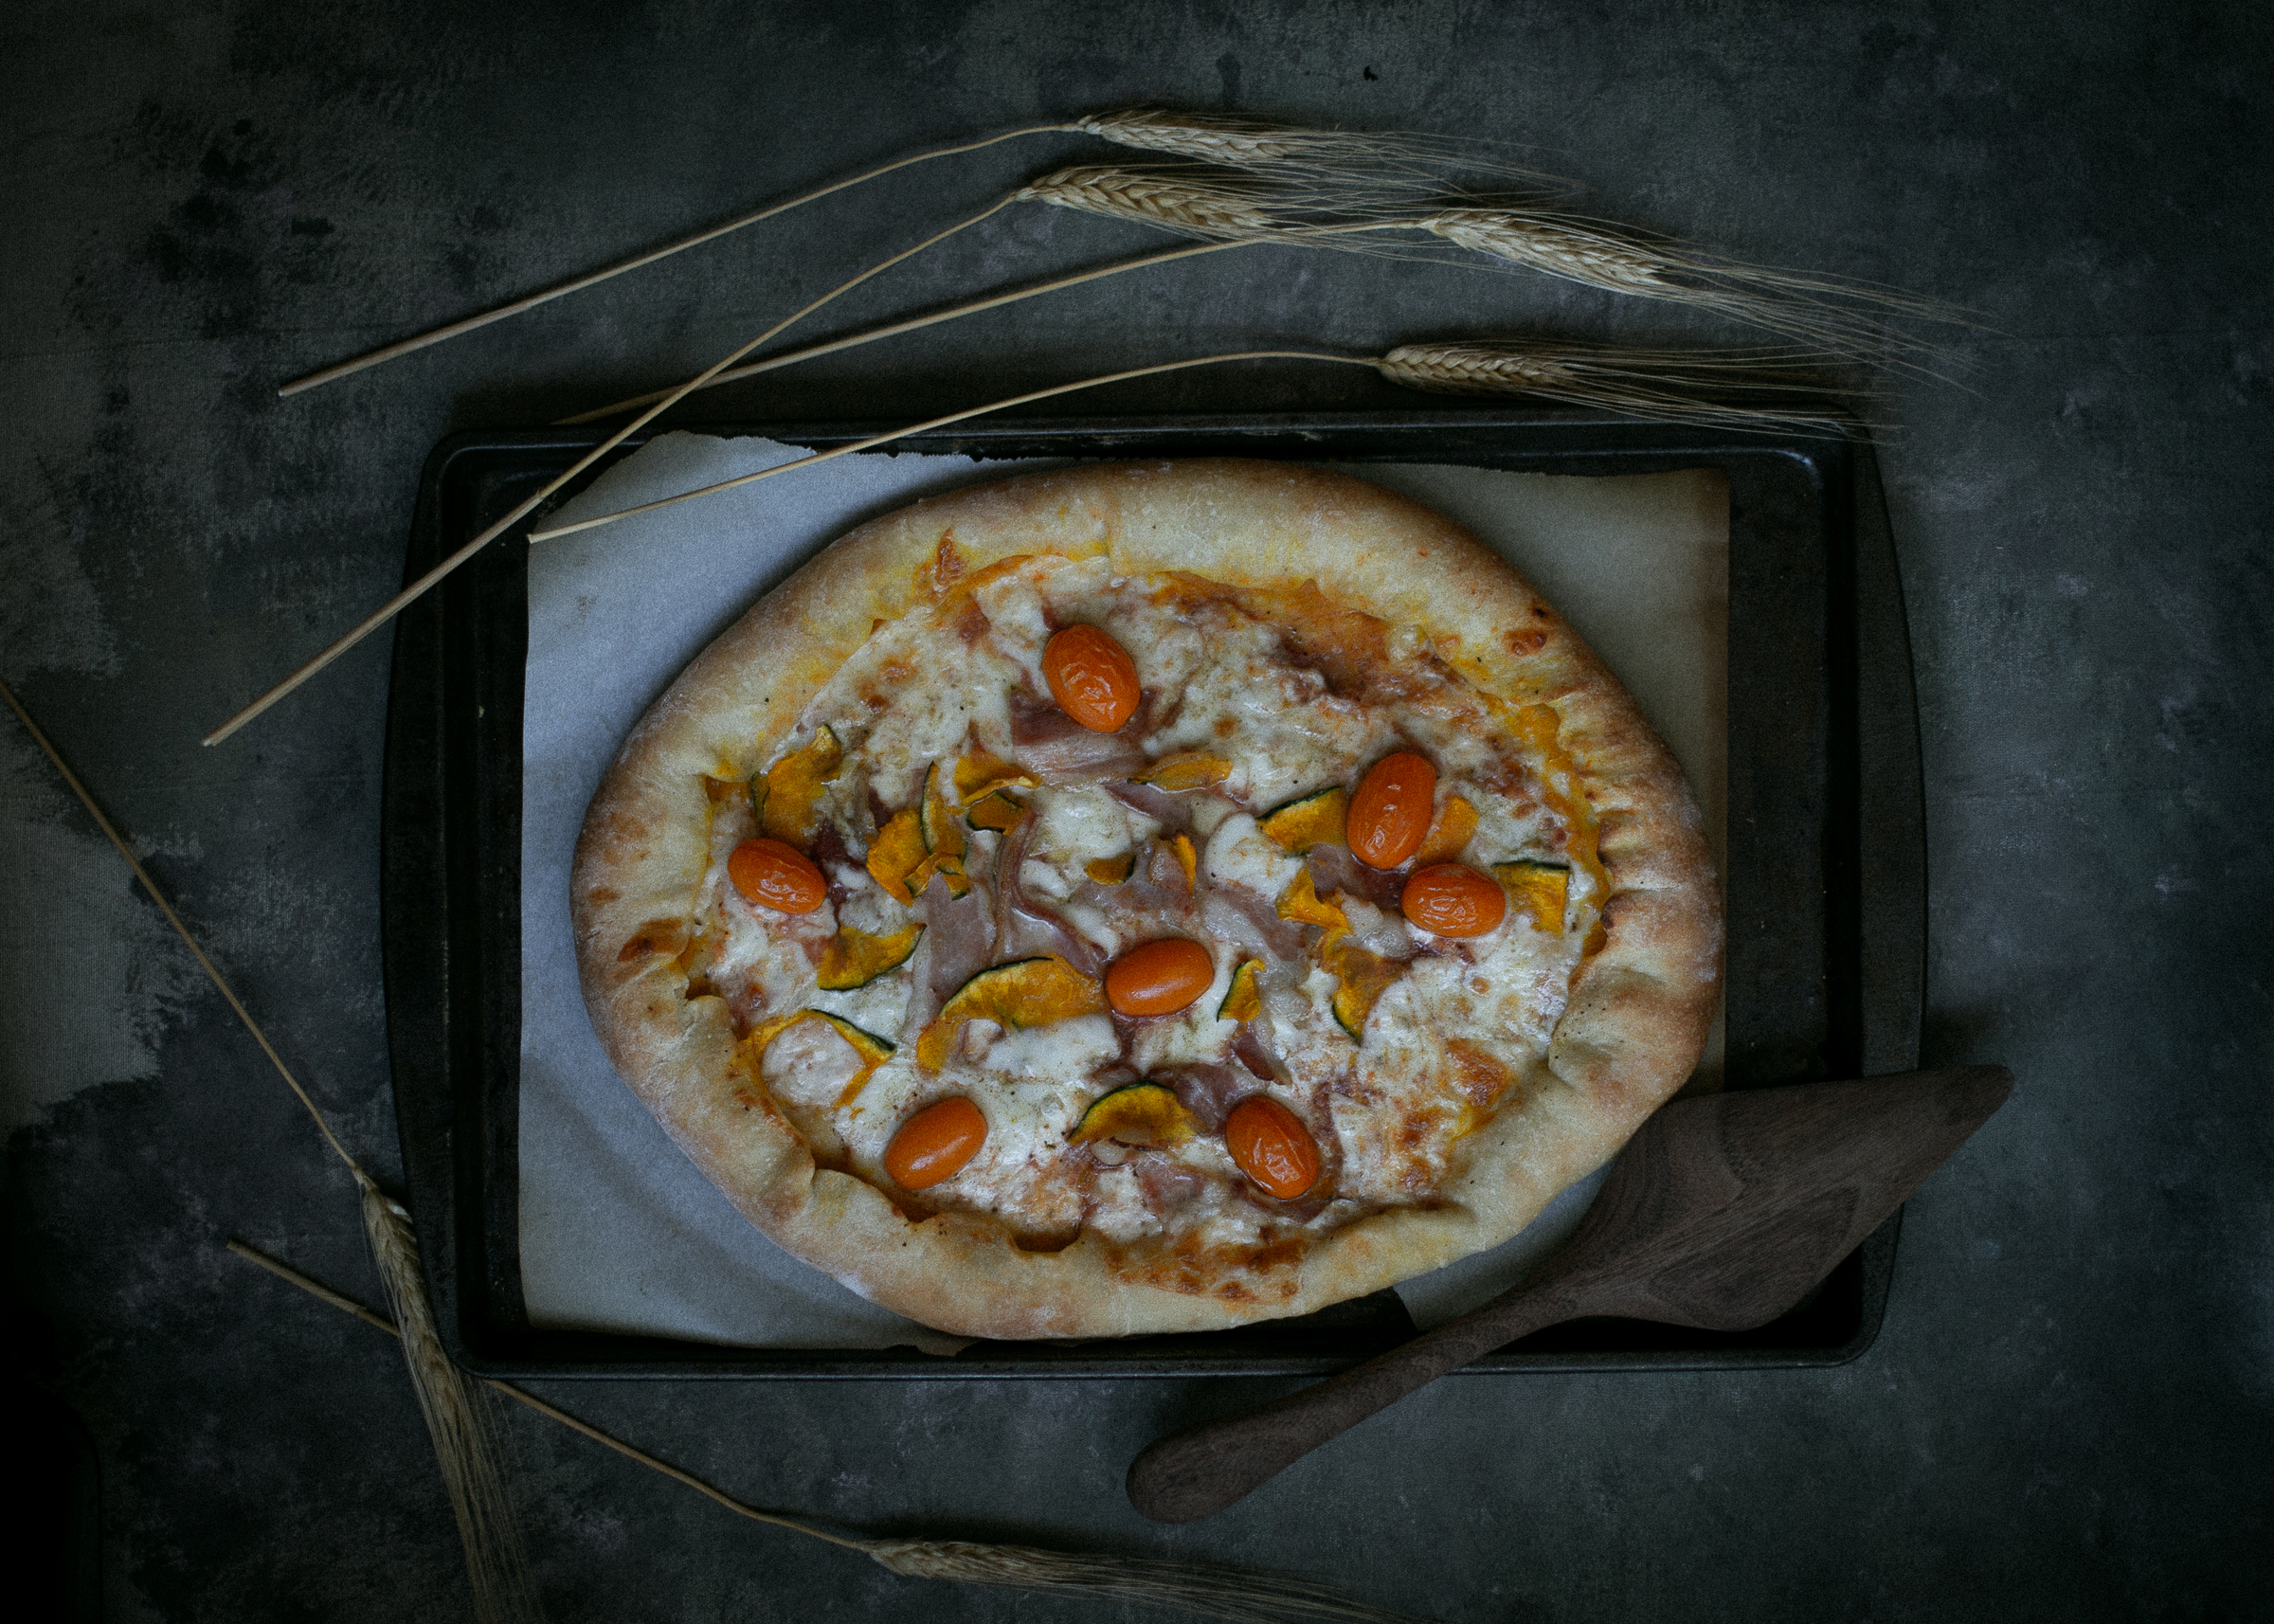 Sweet kabocha filling stuffed crust pizza, Korean-American fusion | from scratch, mostly blog